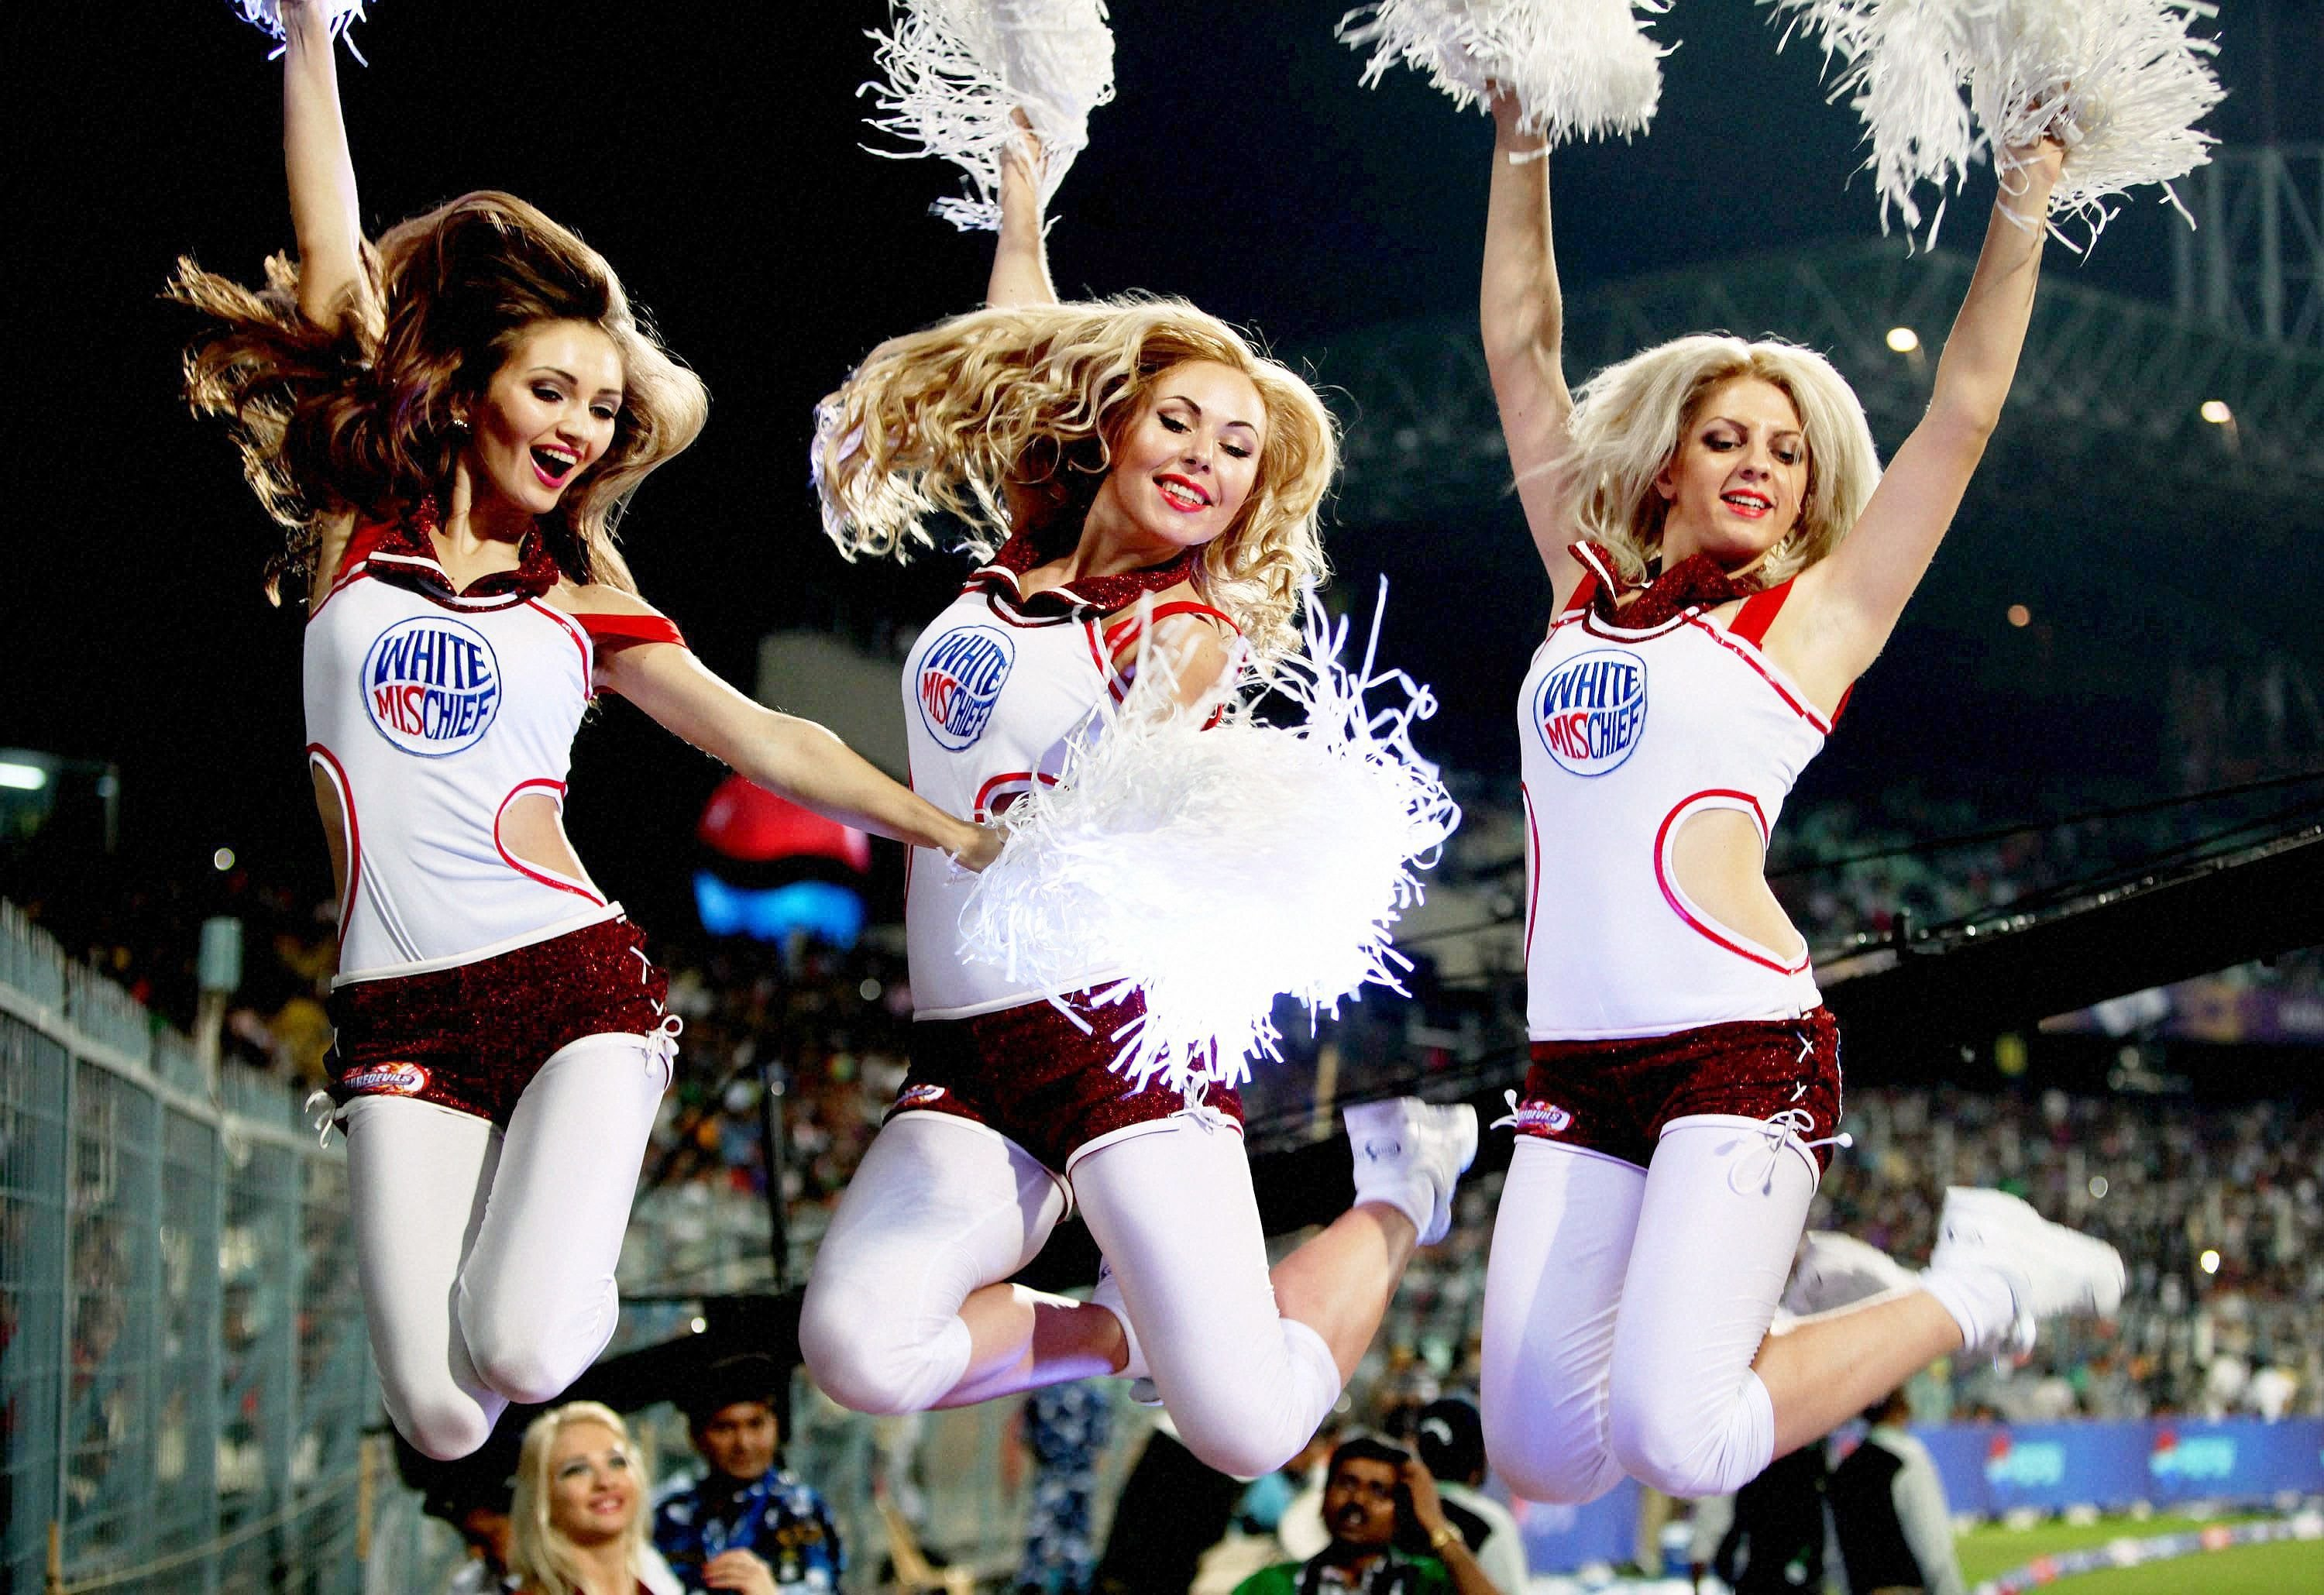 These Ridiculously Sexist Rules From A Cheerleading Handbook Reveal The  Profession's Dark Side